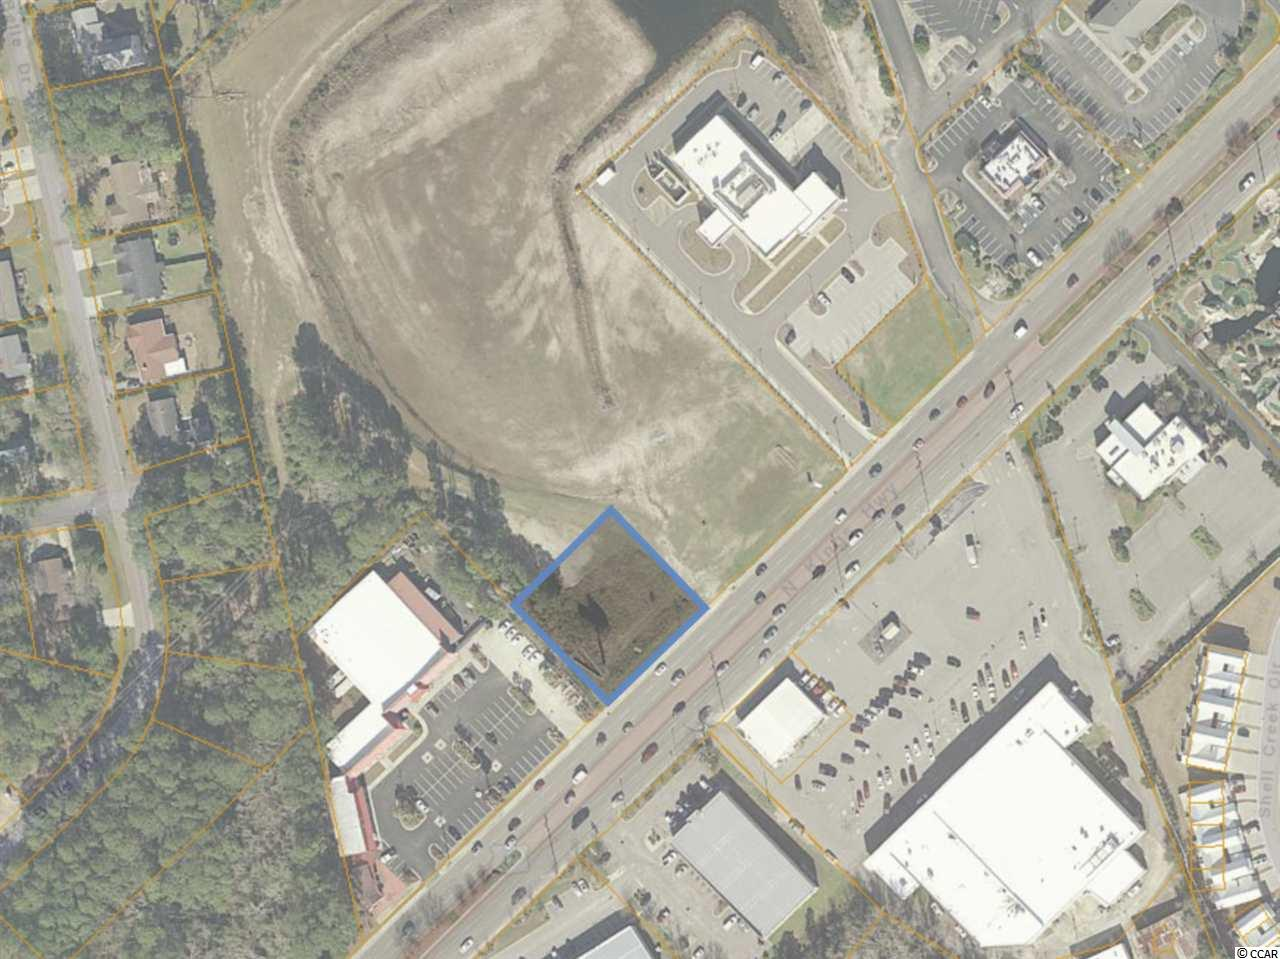 Prime Commercial Lot-For Sale-North Myrtle Beach, SC.  Don't missed this one.   Prime 0.52 acre of Land for Retail, Drive Thru, Restaurant Site in the Growing North Myrtle Beach market in South Carolina. This site has approximately 150' of Frontage along Highway 17. Average Daily Traffic Count 38,40 (Source: SCDOT 2019).   Zoning: Highway Commercial (HC) in the City of North Myrtle Beach, SC. It's centrally located in NMB next to Dick's Pawn Shop and a newly built Grand Strand Emergency Outpost.  North Myrtle Beach is a family-friendly town with top hotels, beach homes , condos for both permanent resident and tourist. Measurements are approximate and not guaranteed. Buyer responsible for verification.